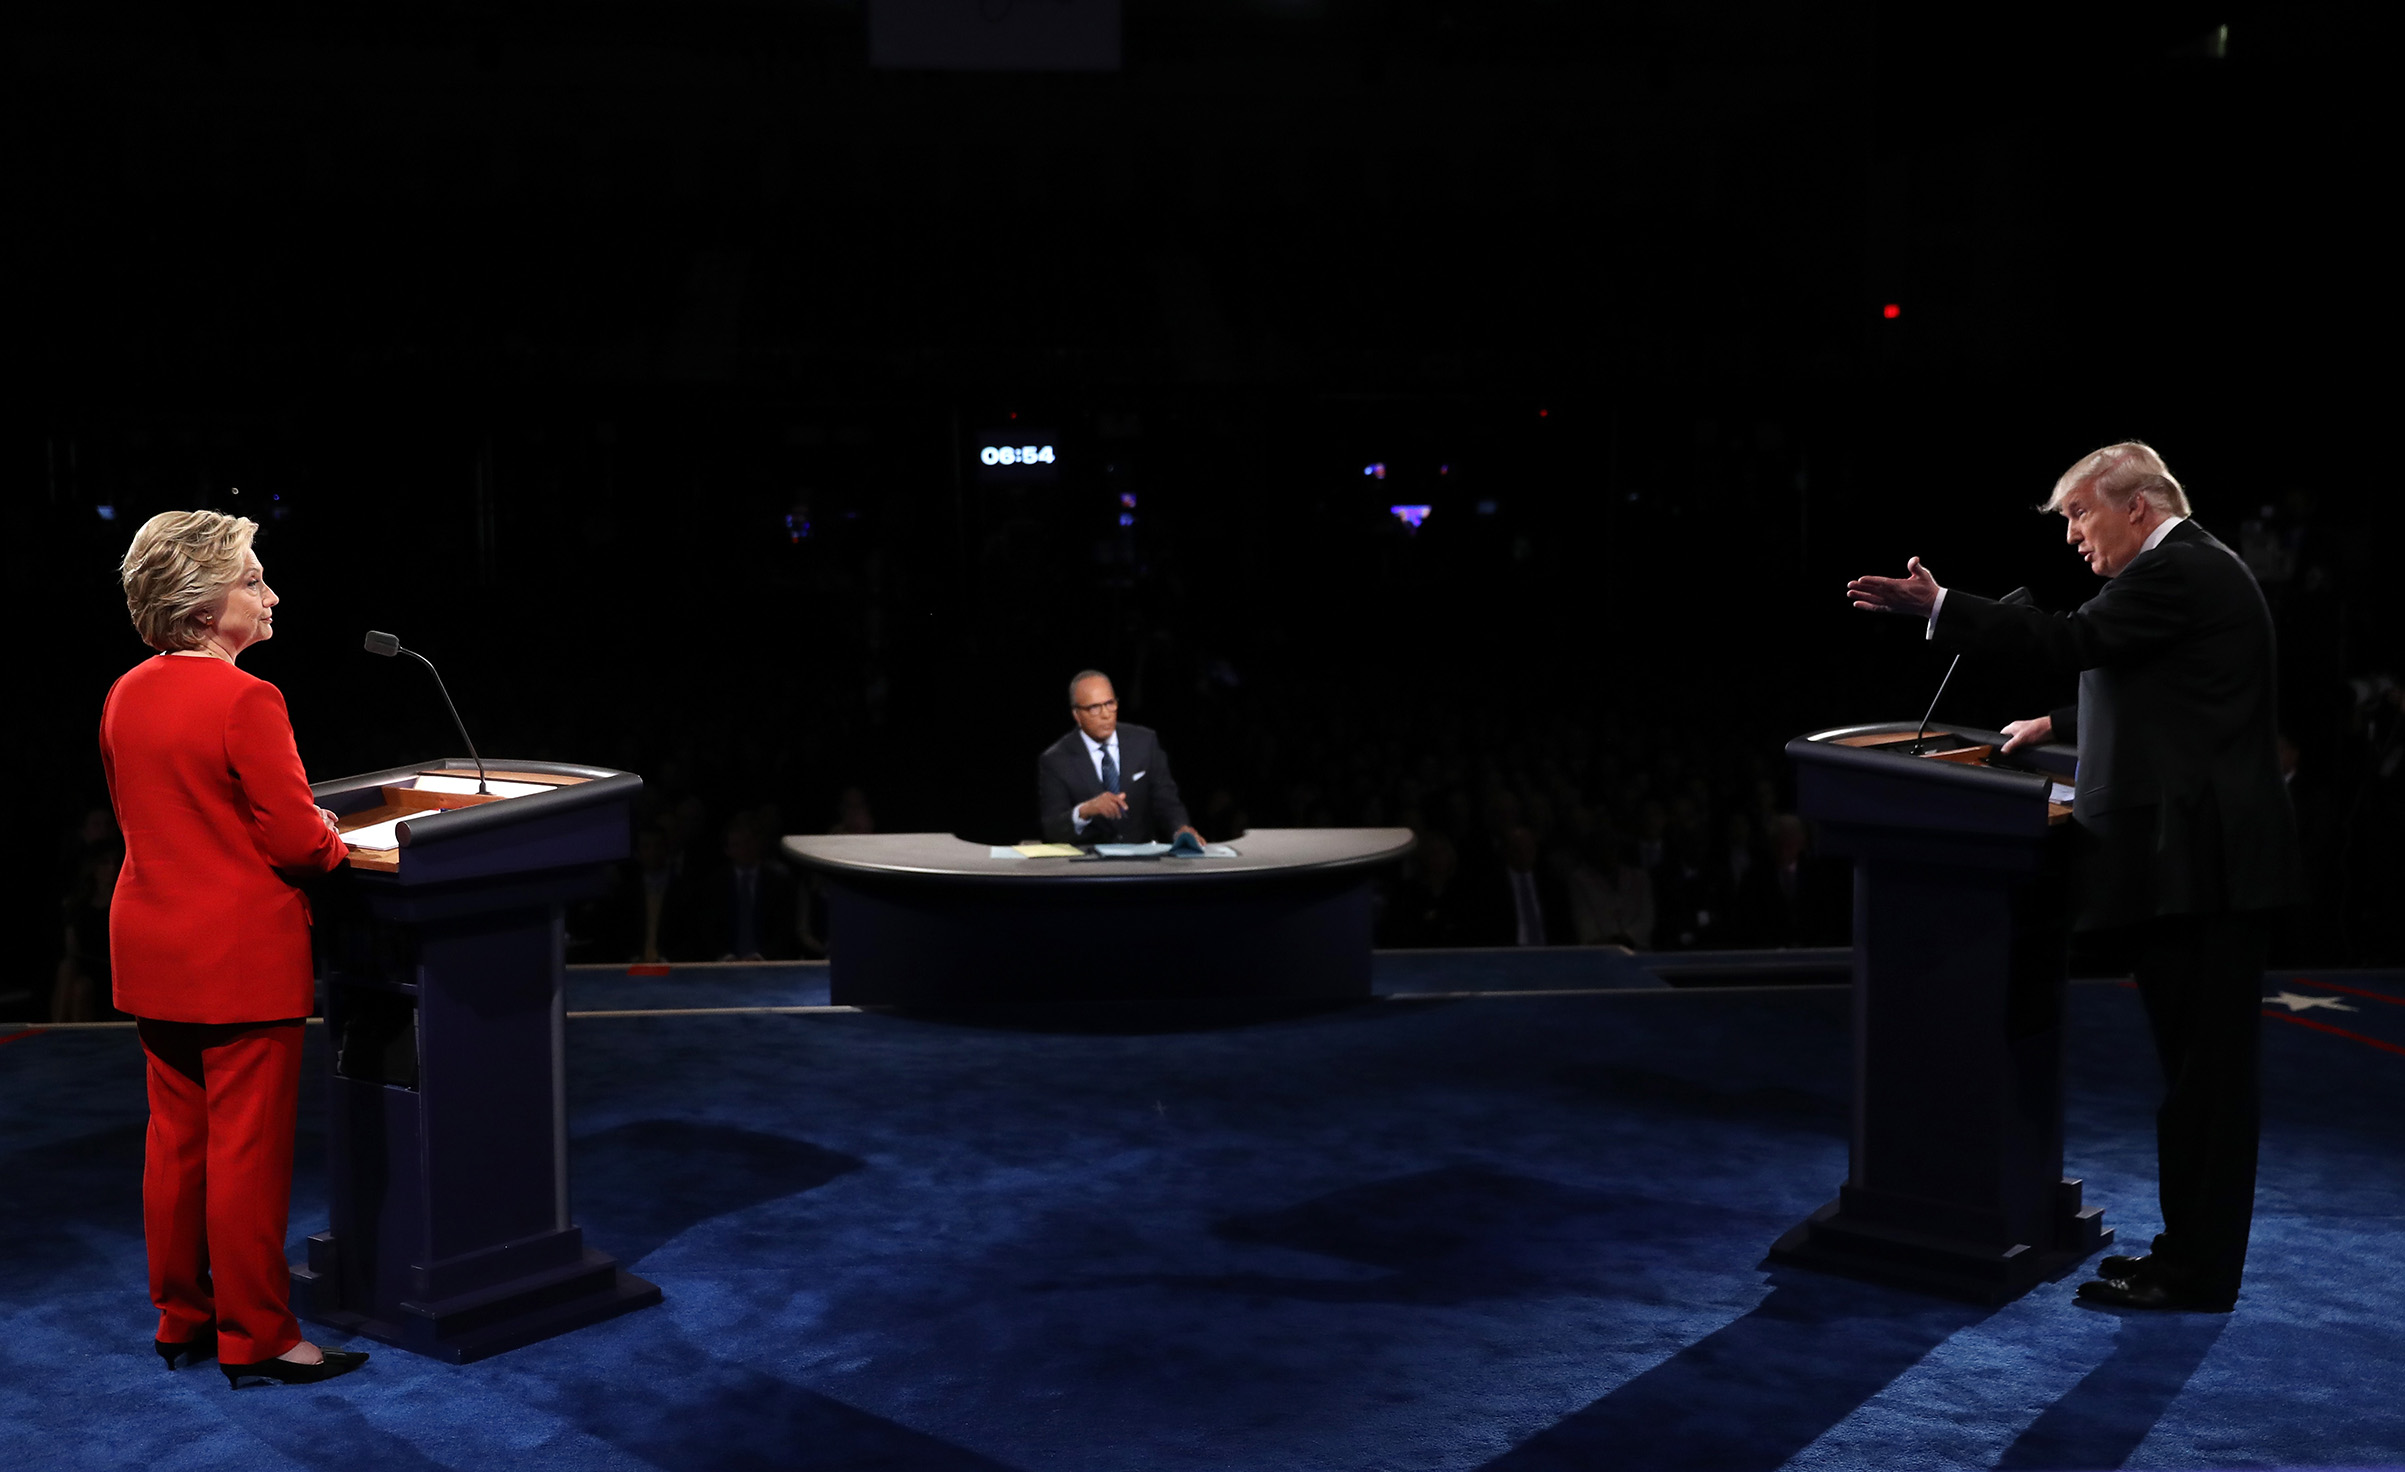 Republican presidential nominee Donald Trump speaks as Democratic presidential nominee Hillary Clinton and Moderator Lester Holt listens during the Presidential Debate at Hofstra University on Sept. 26, 2016.